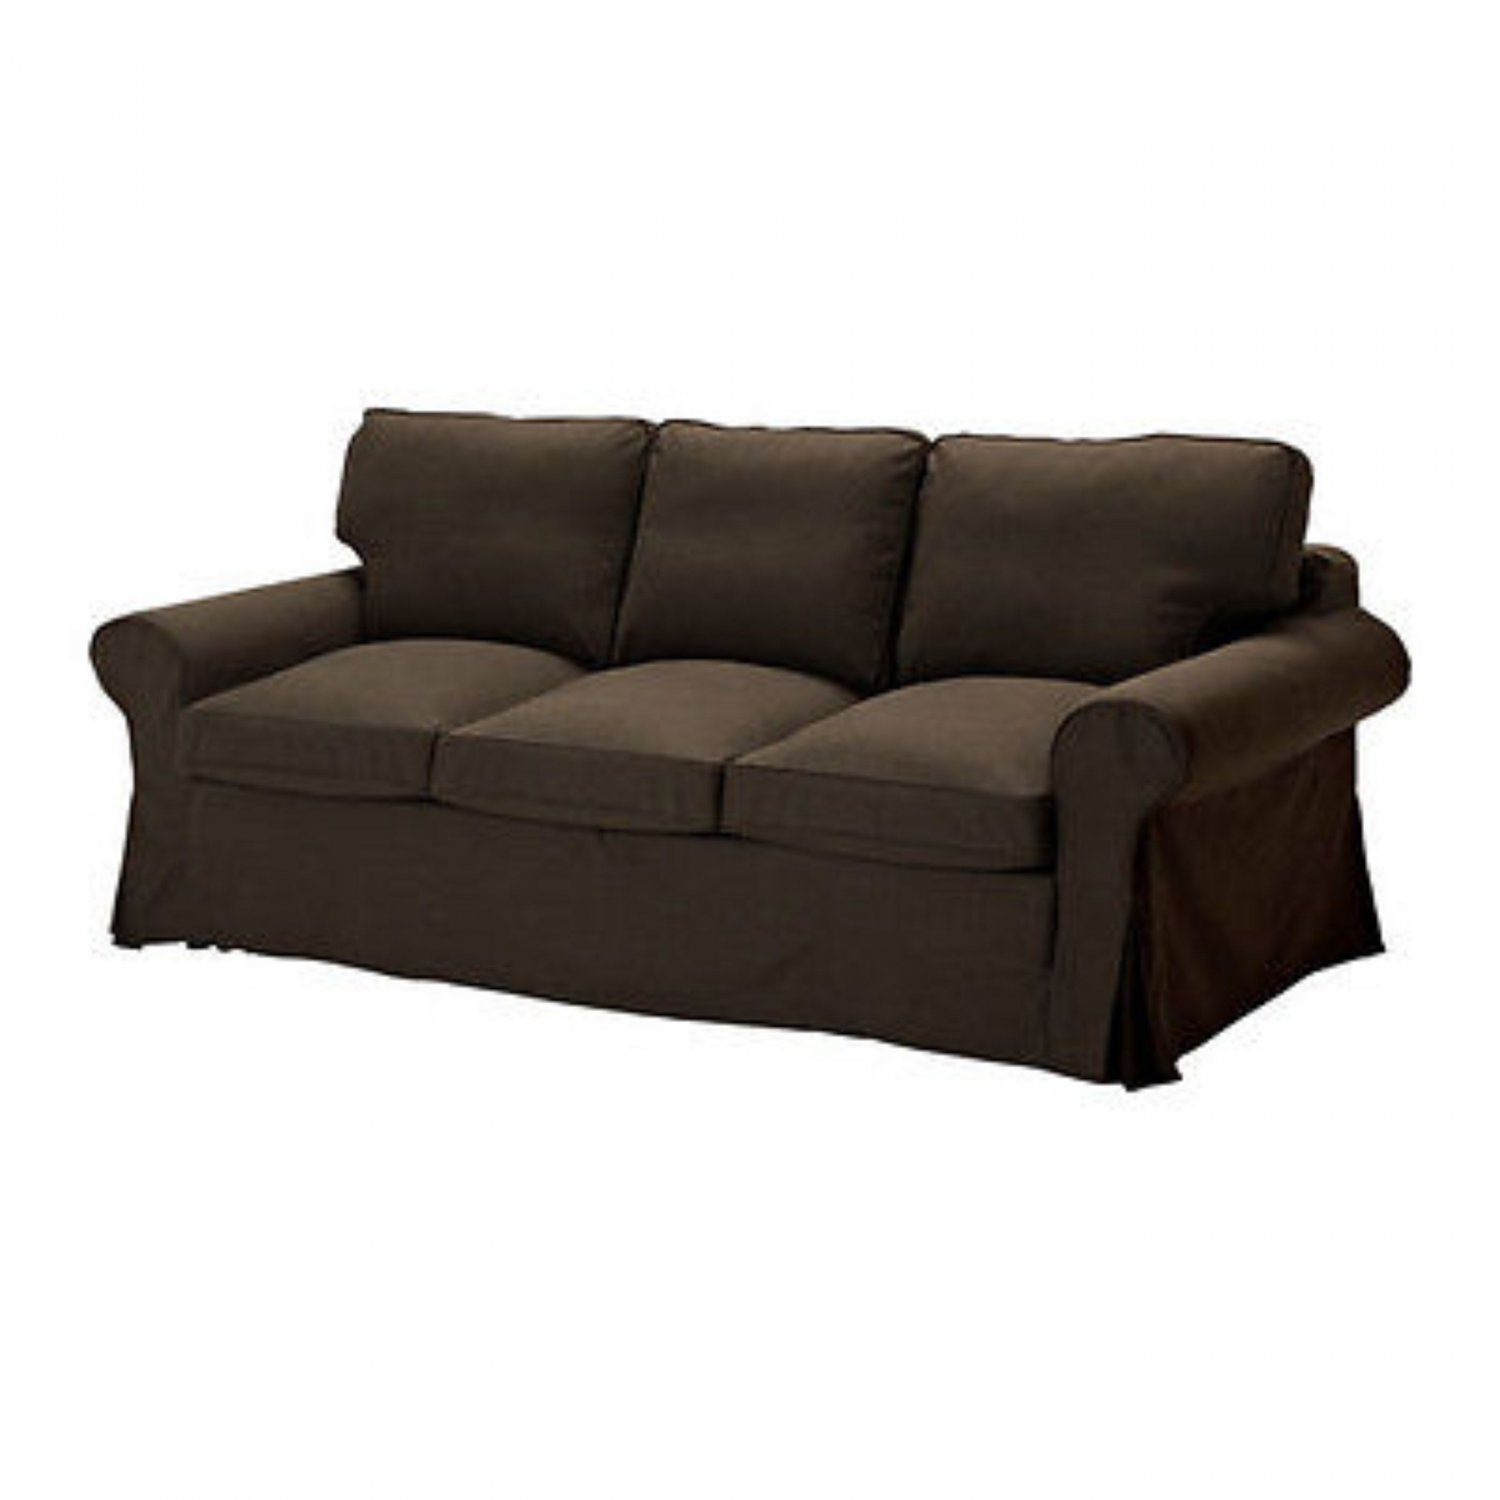 Ikea Ektorp Pixbo 3 Seater Sofa Bed Svanby Brown